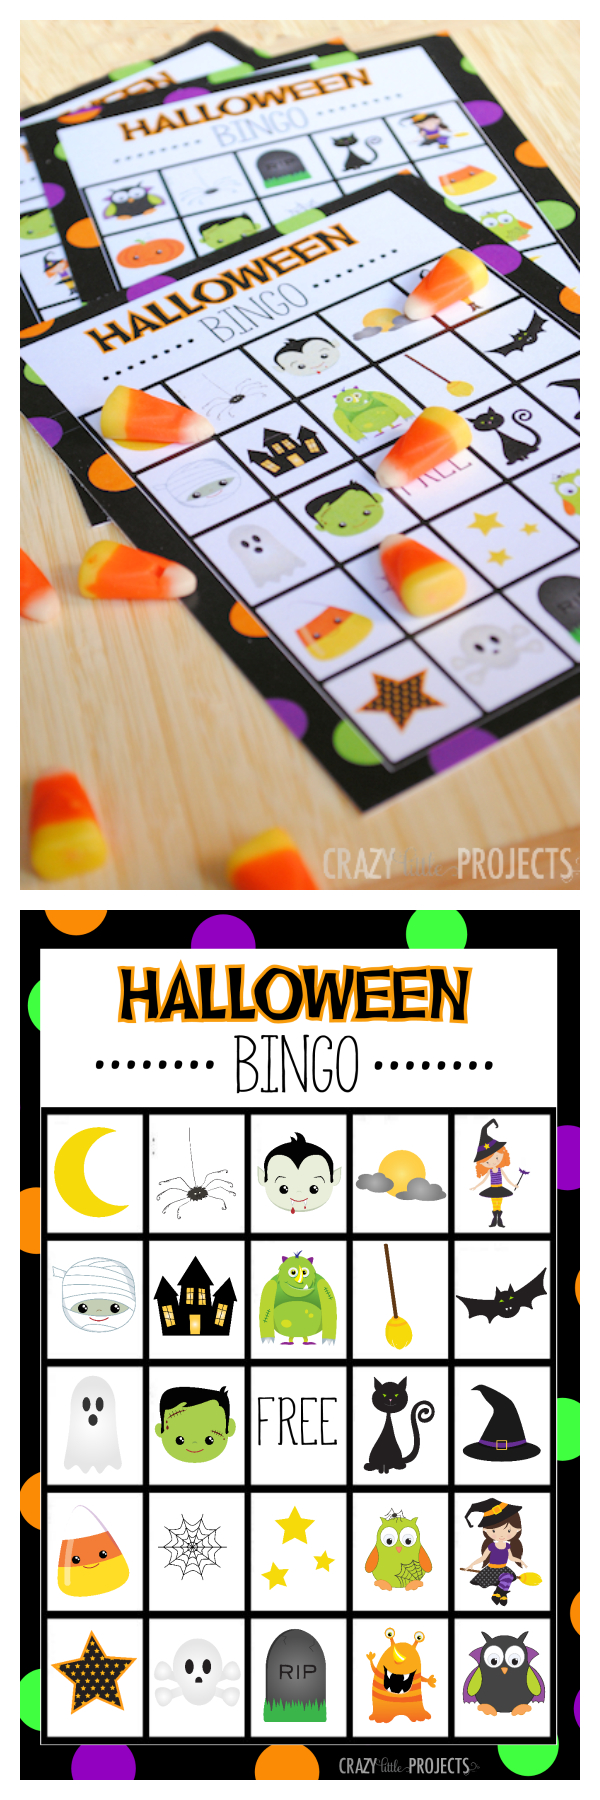 Halloween Bingo - Cute Free Printable Game - Halloween